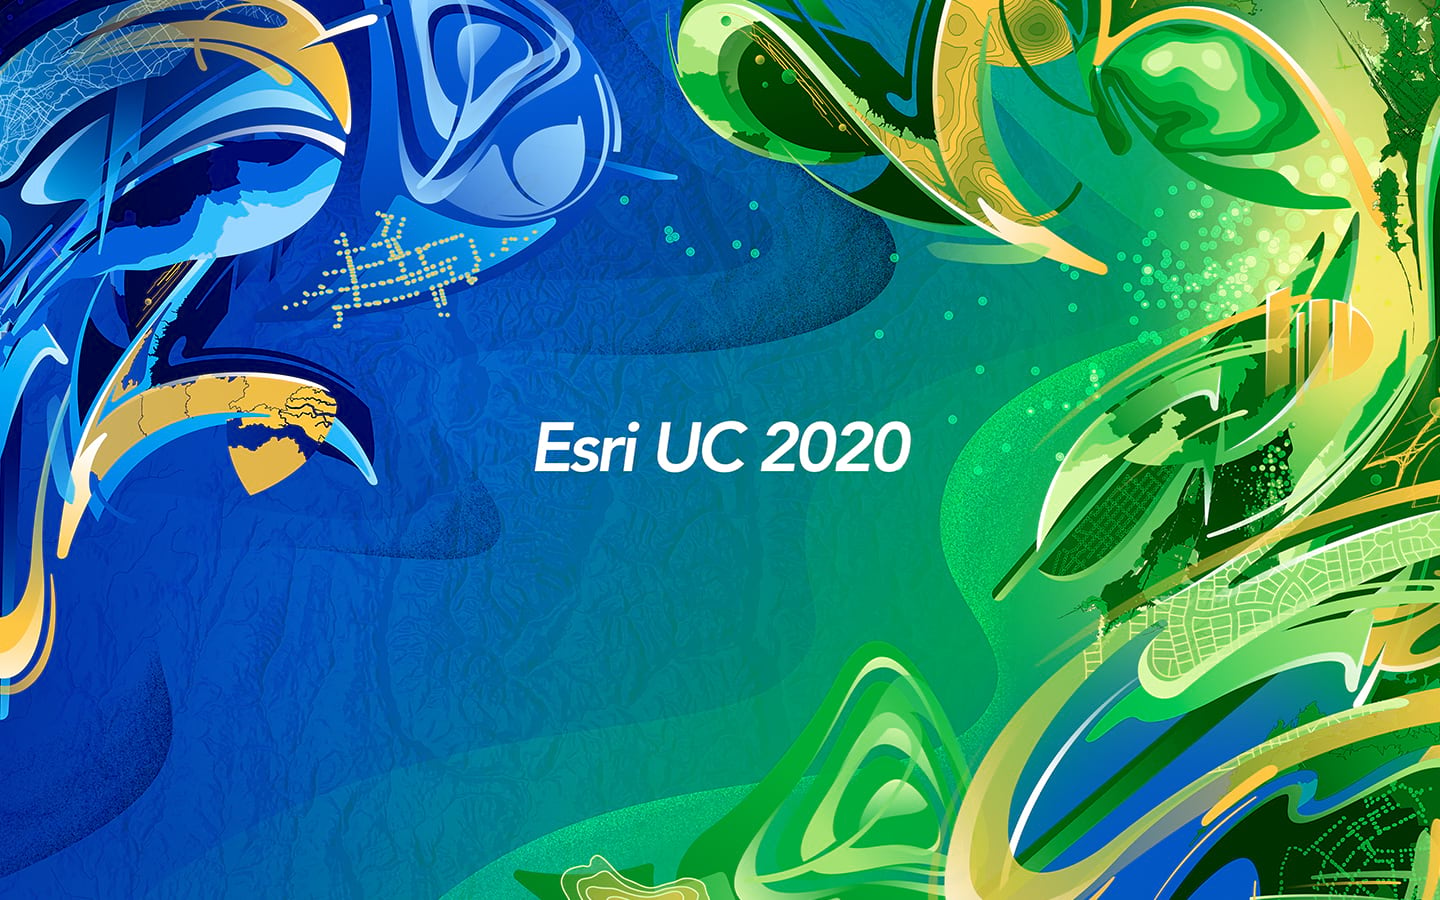 Come visit the team at the Esri UC 2020 expo in the Spatial Data Management showcase!